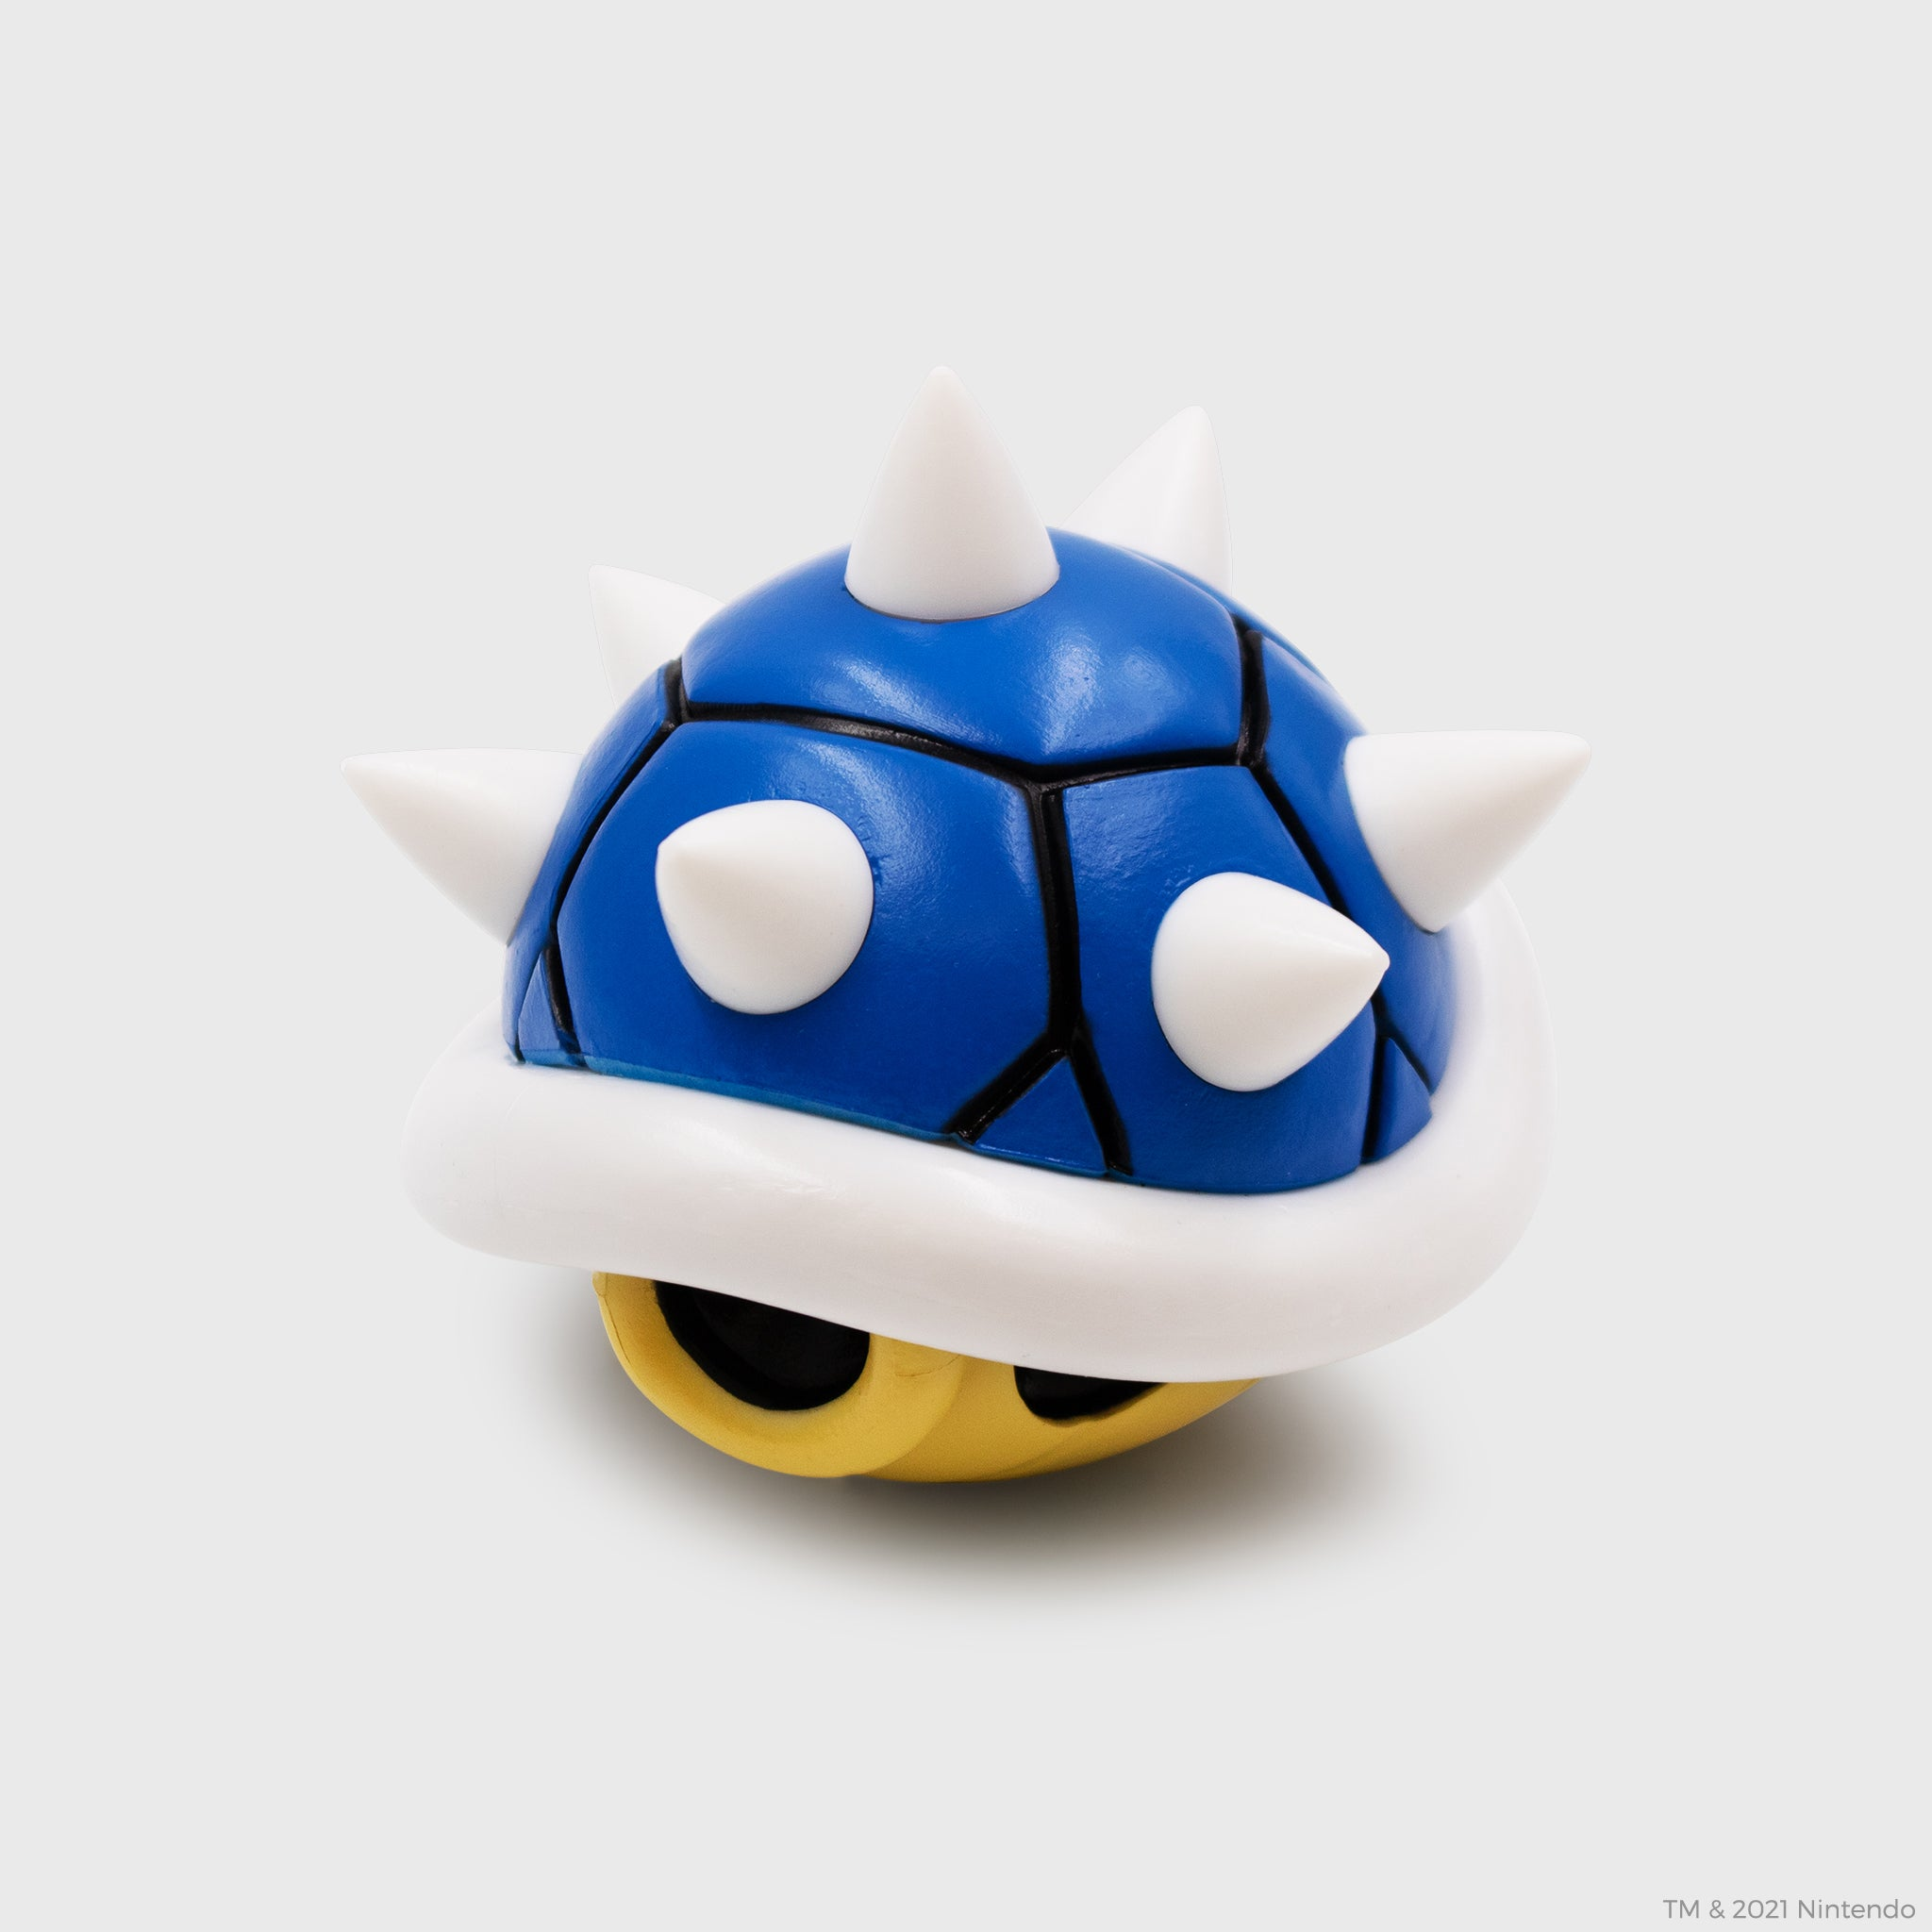 mario kart nintendo video games racing collector's box exclusive collectible culturefly blue shell koopa figurine